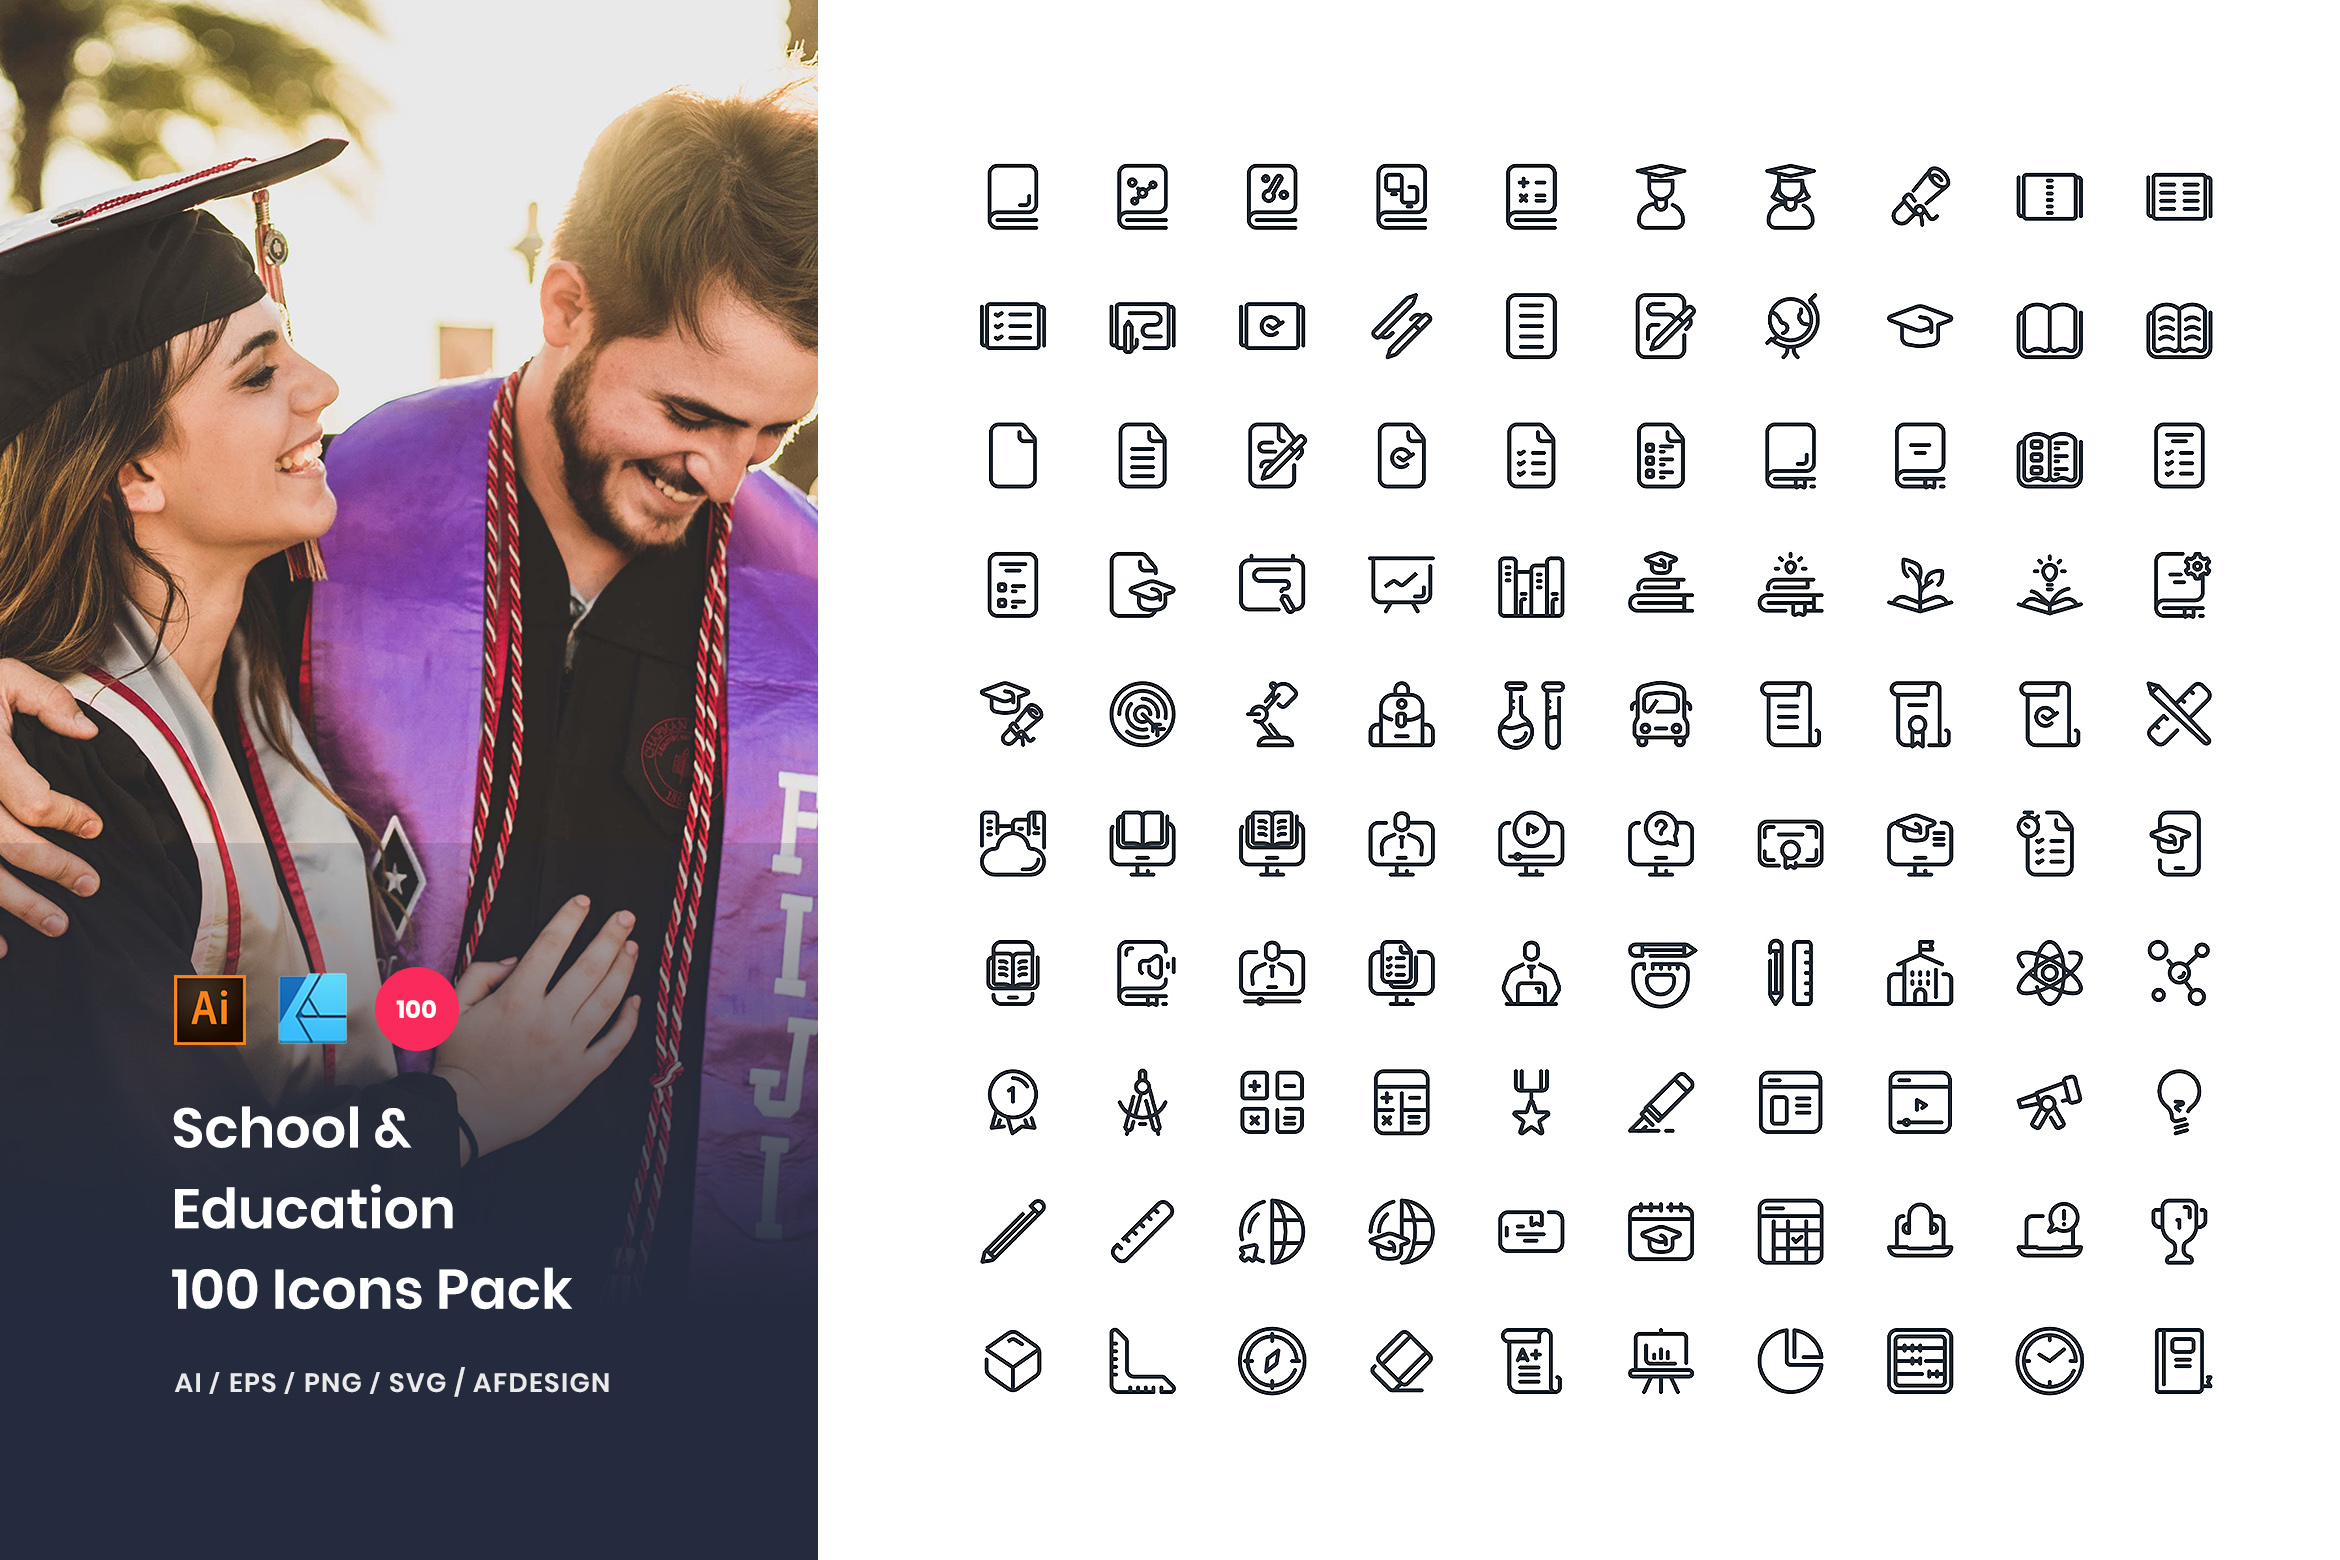 School & Education 100 Set Icons Pack example image 1